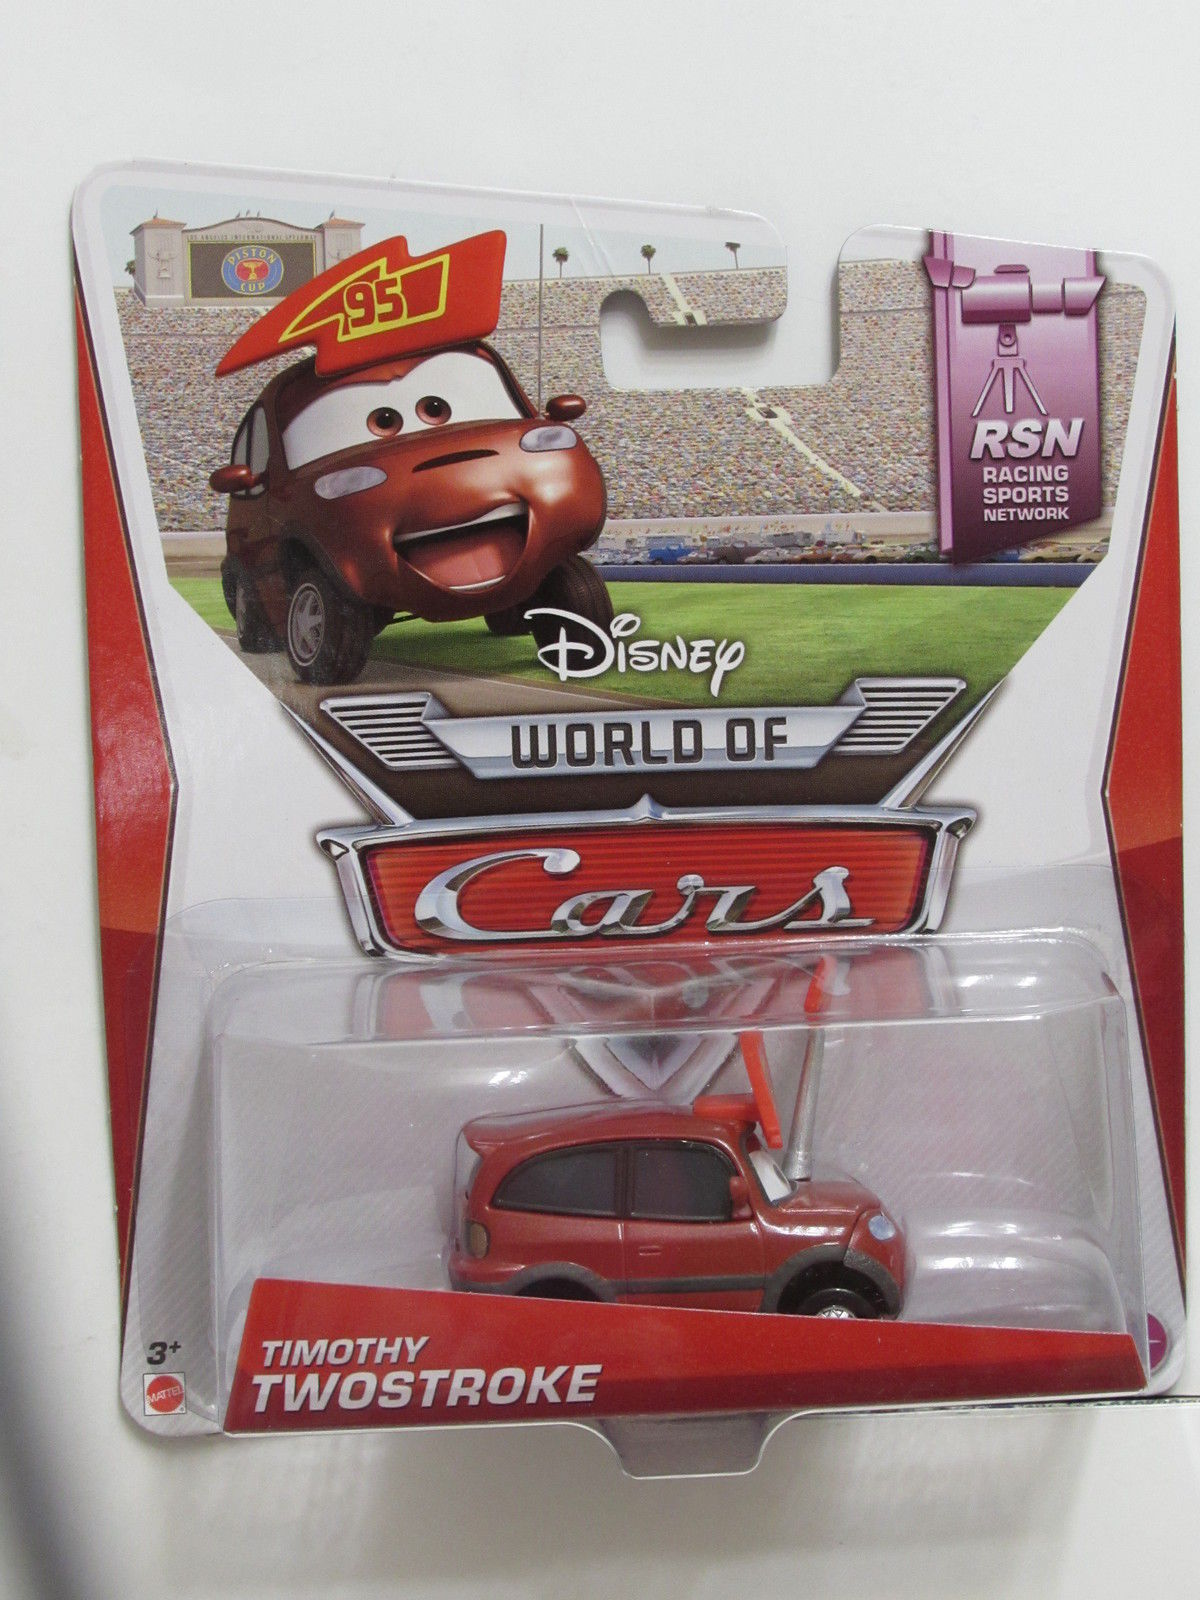 DISNEY PIXAR CARS WORLD OF CARS TIMOTHY TWOSTROKE